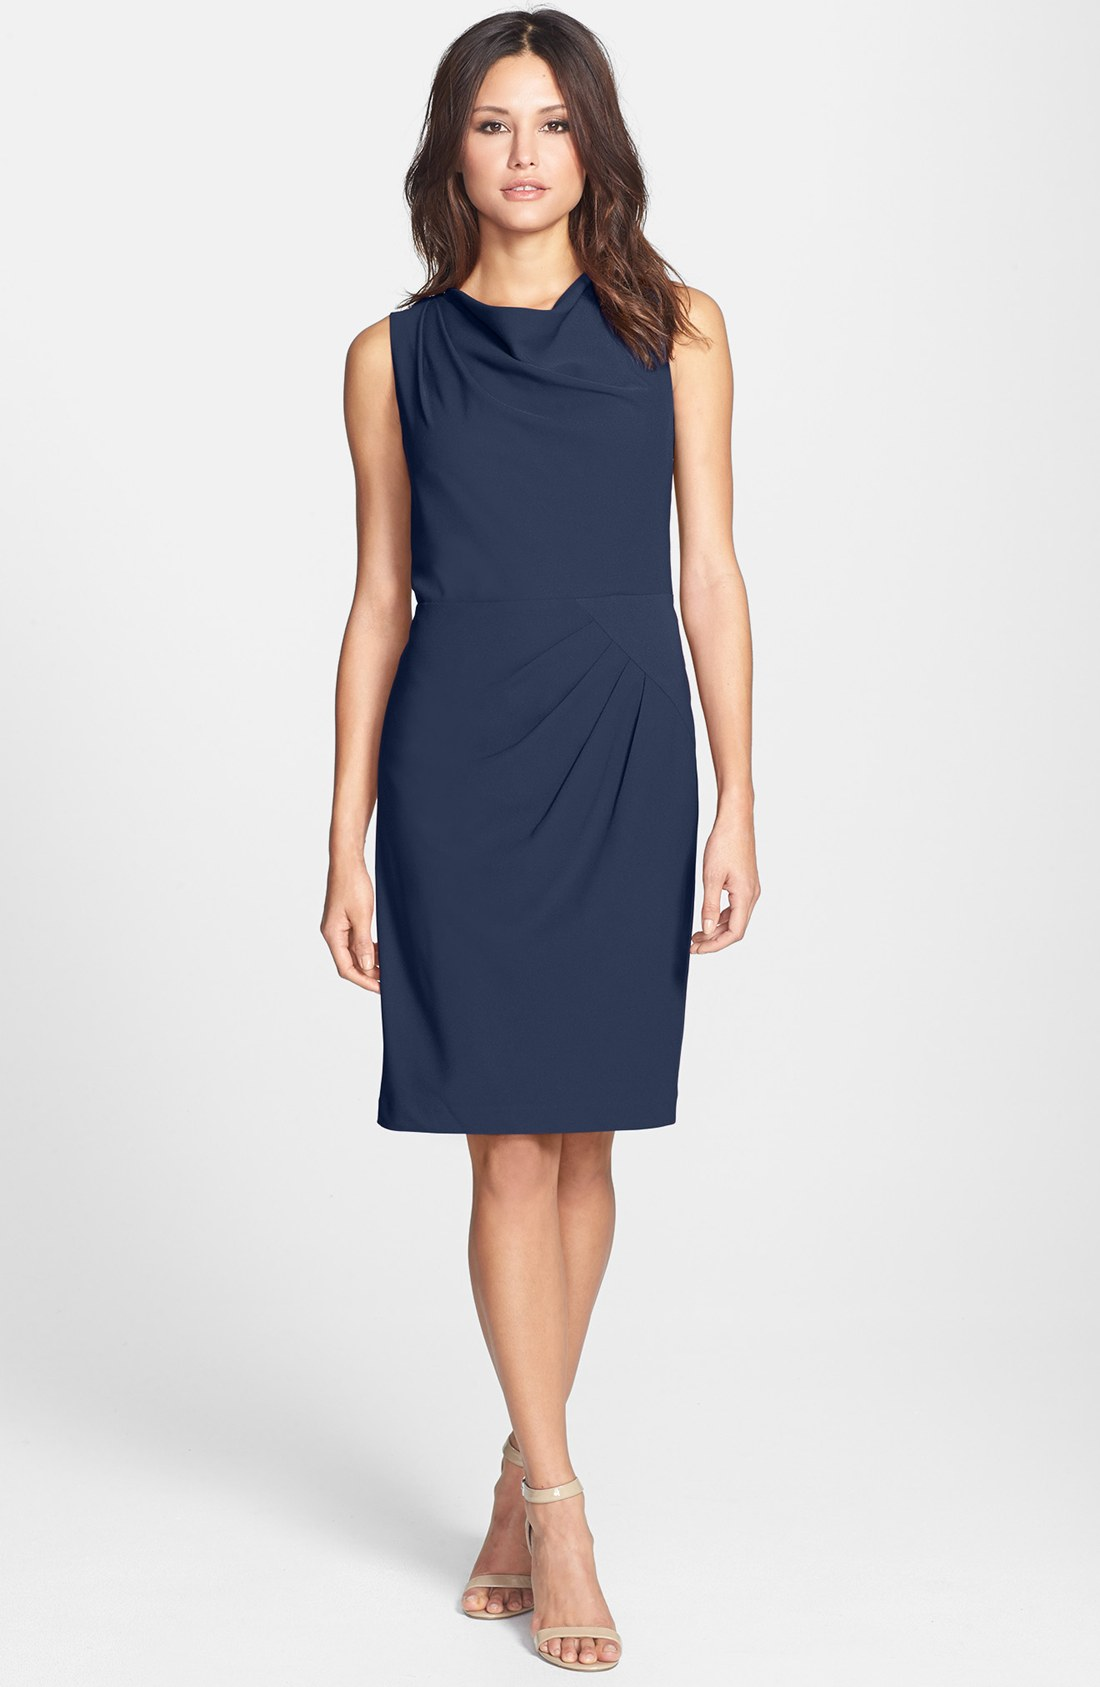 adrianna papell side drape sheath dress in blue indigo